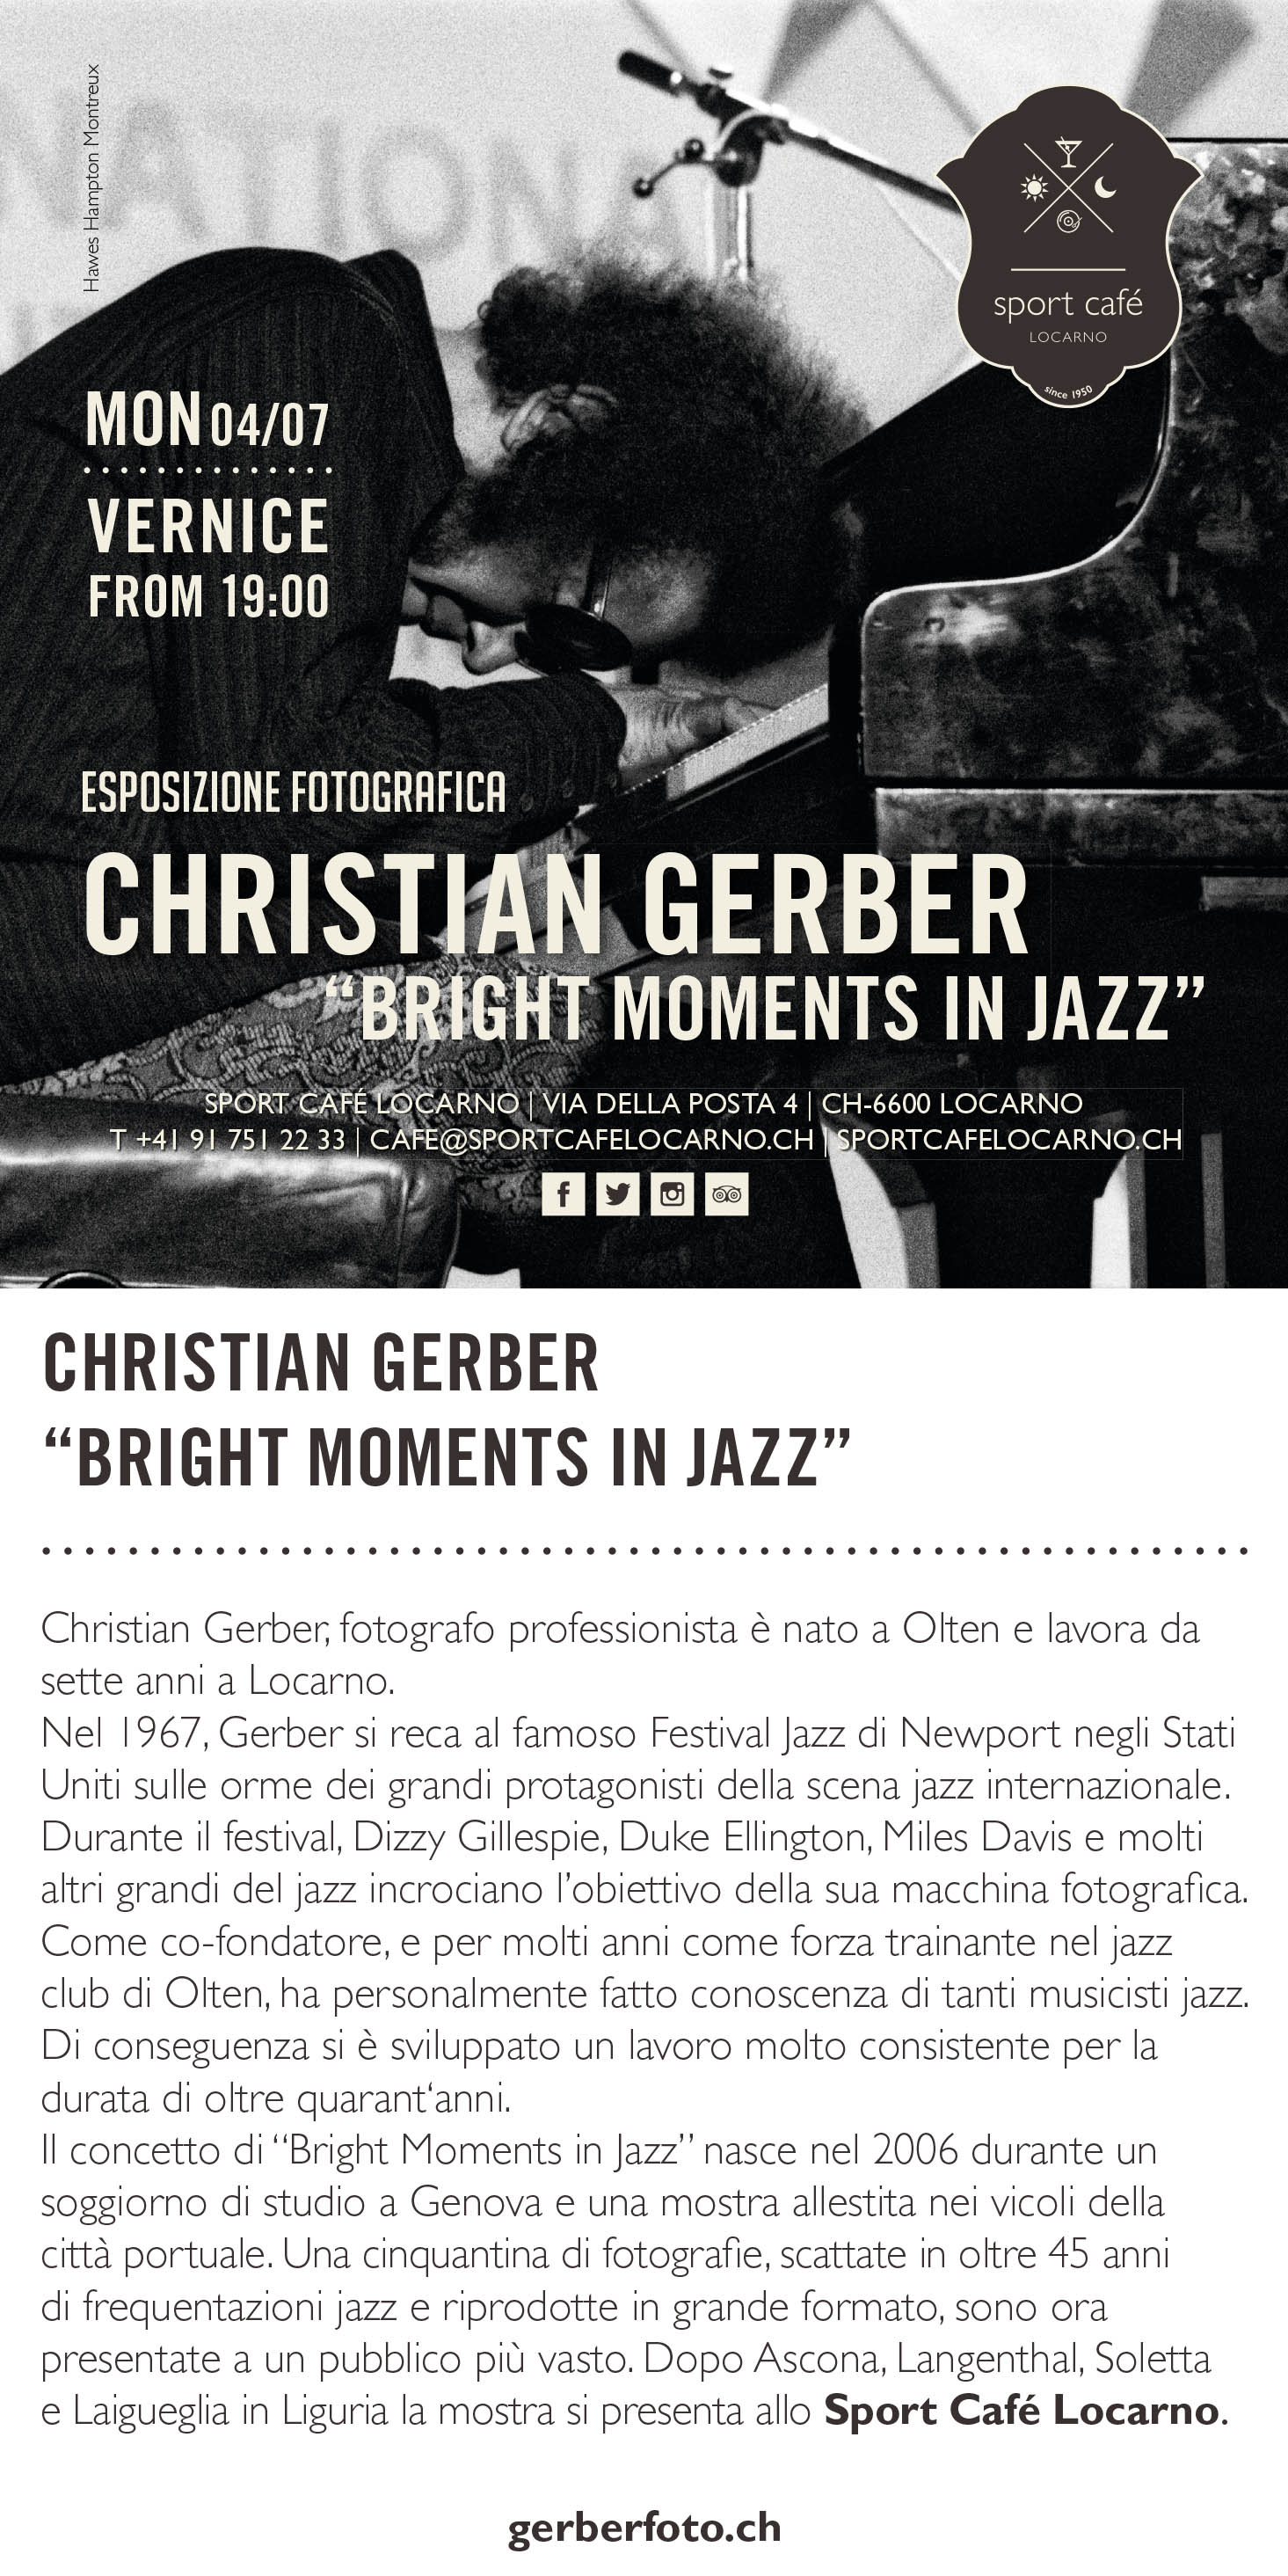 Bright moments in Jazz kl.jpg